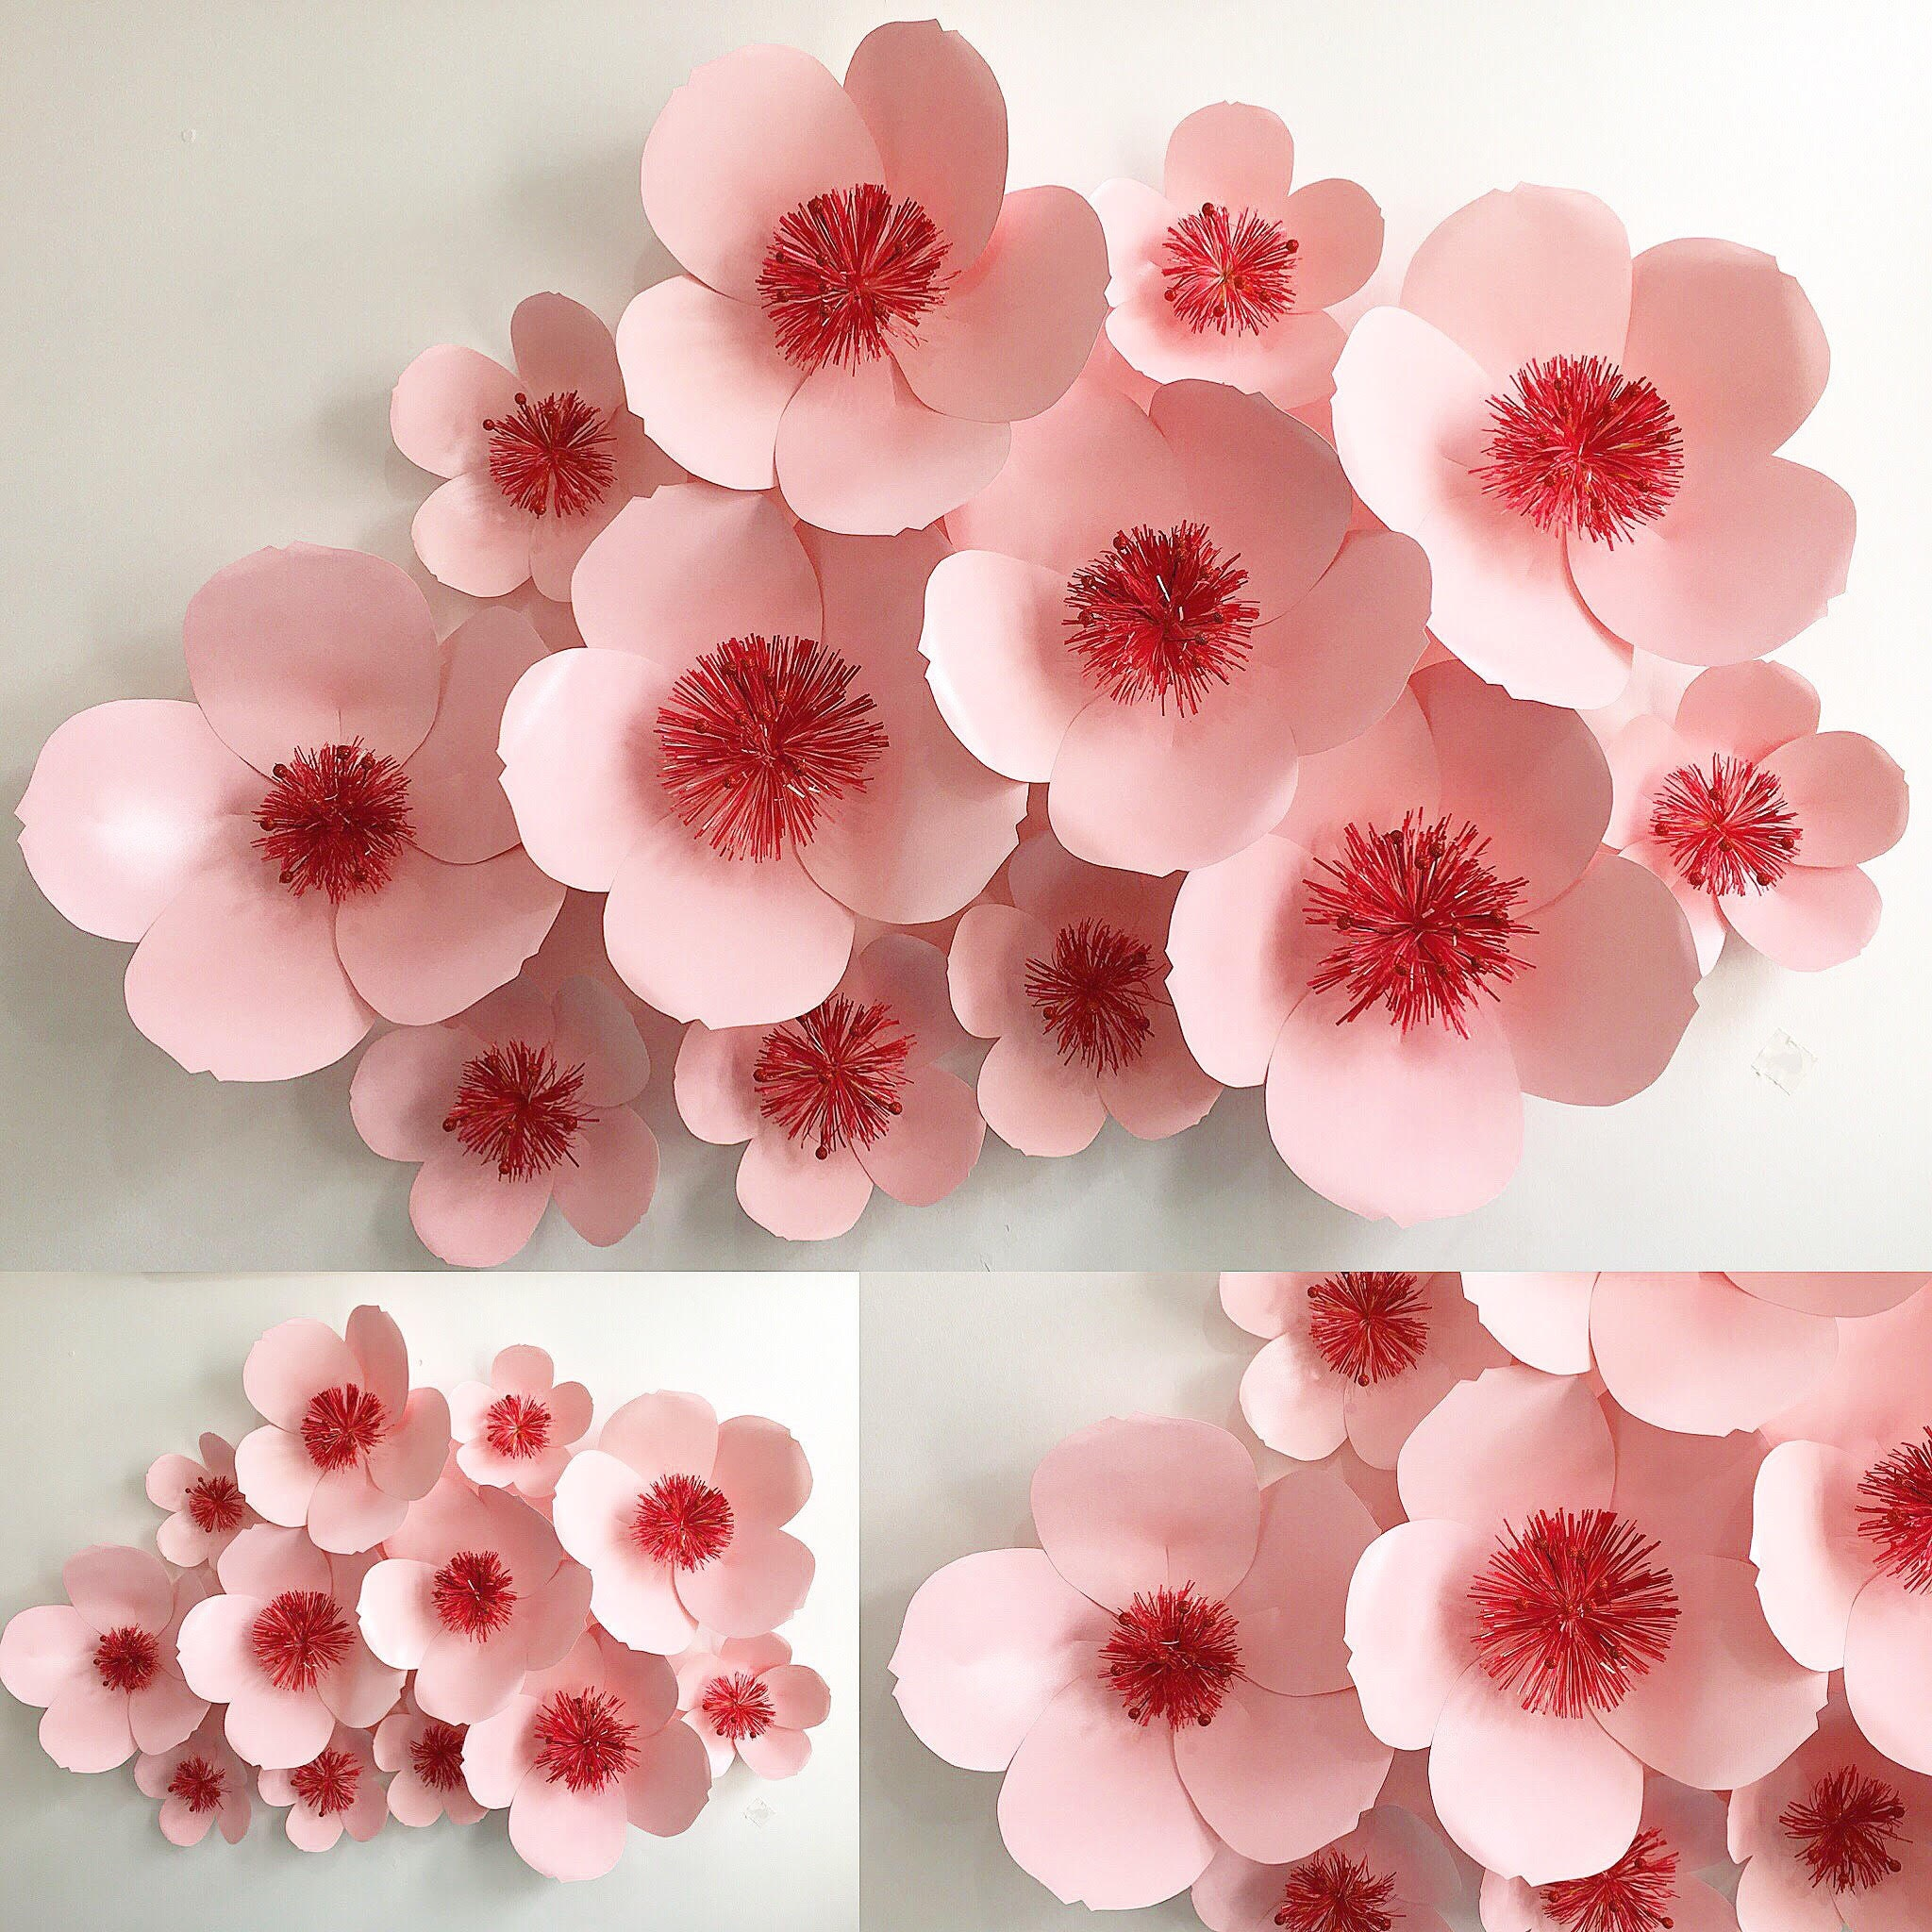 Cherry blossom paper flower backdrop description hello pink cherry blossom flowers mightylinksfo Gallery